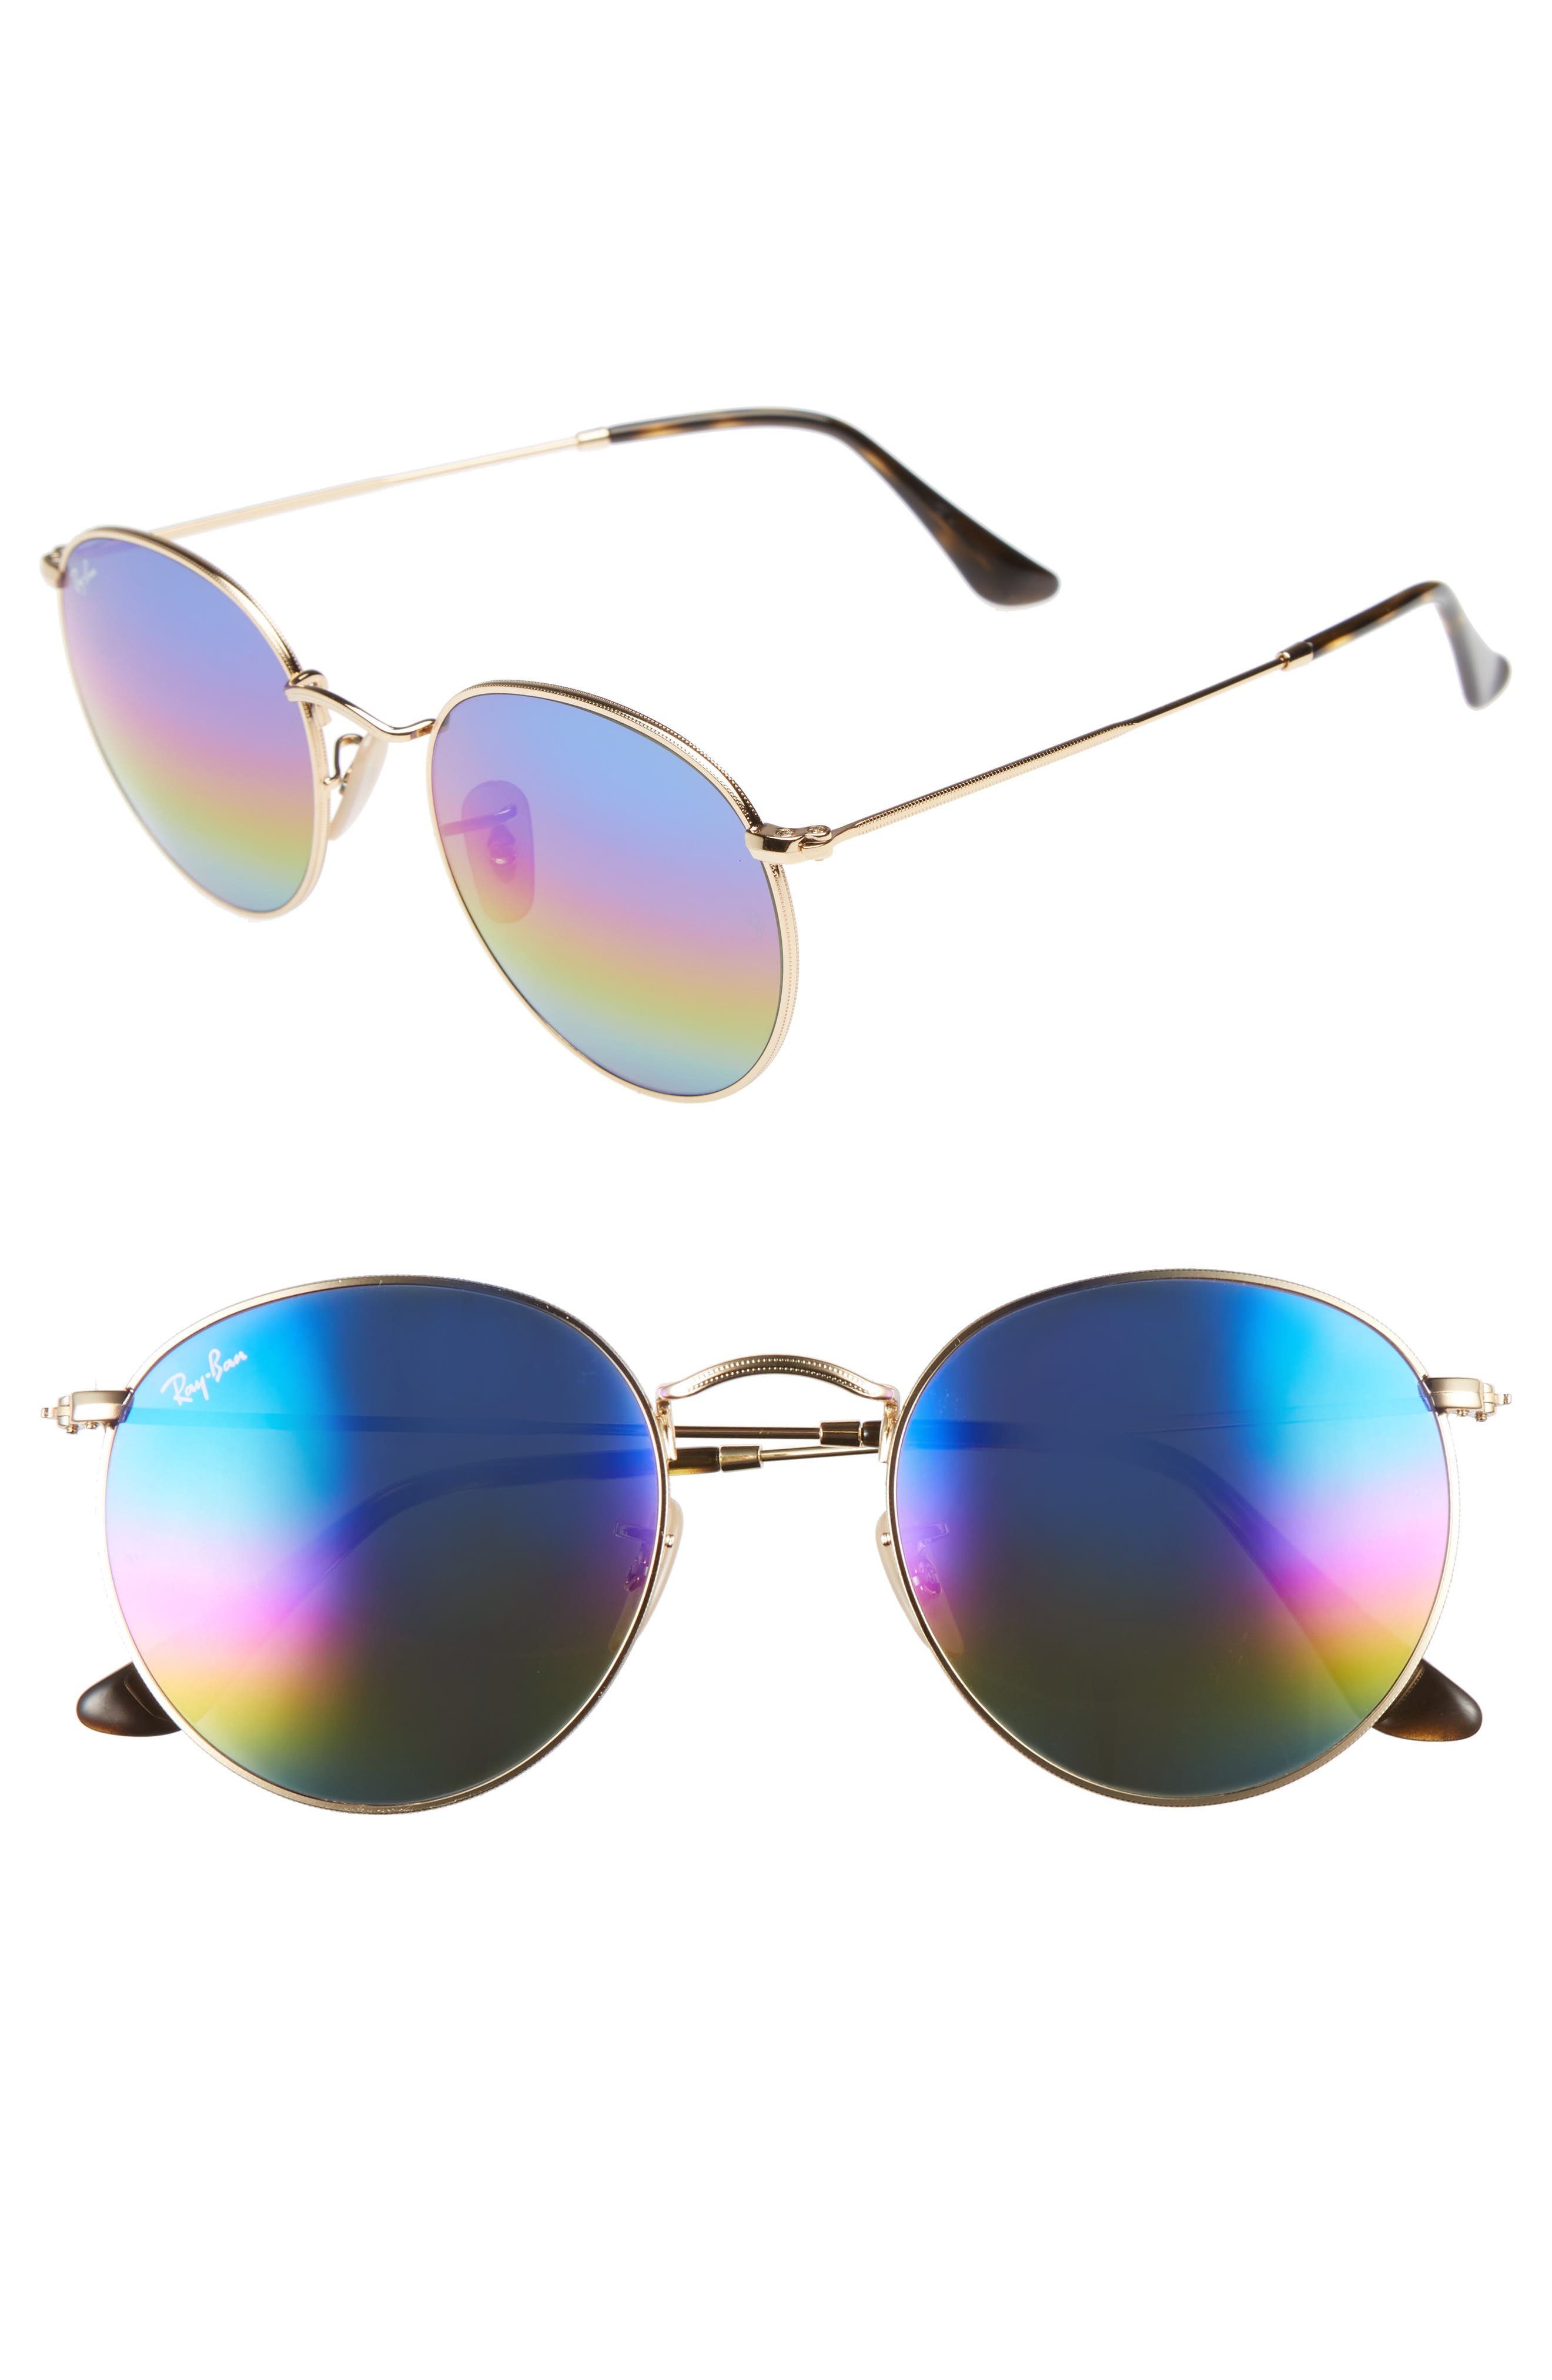 53mm Round Sunglasses,                         Main,                         color, 400